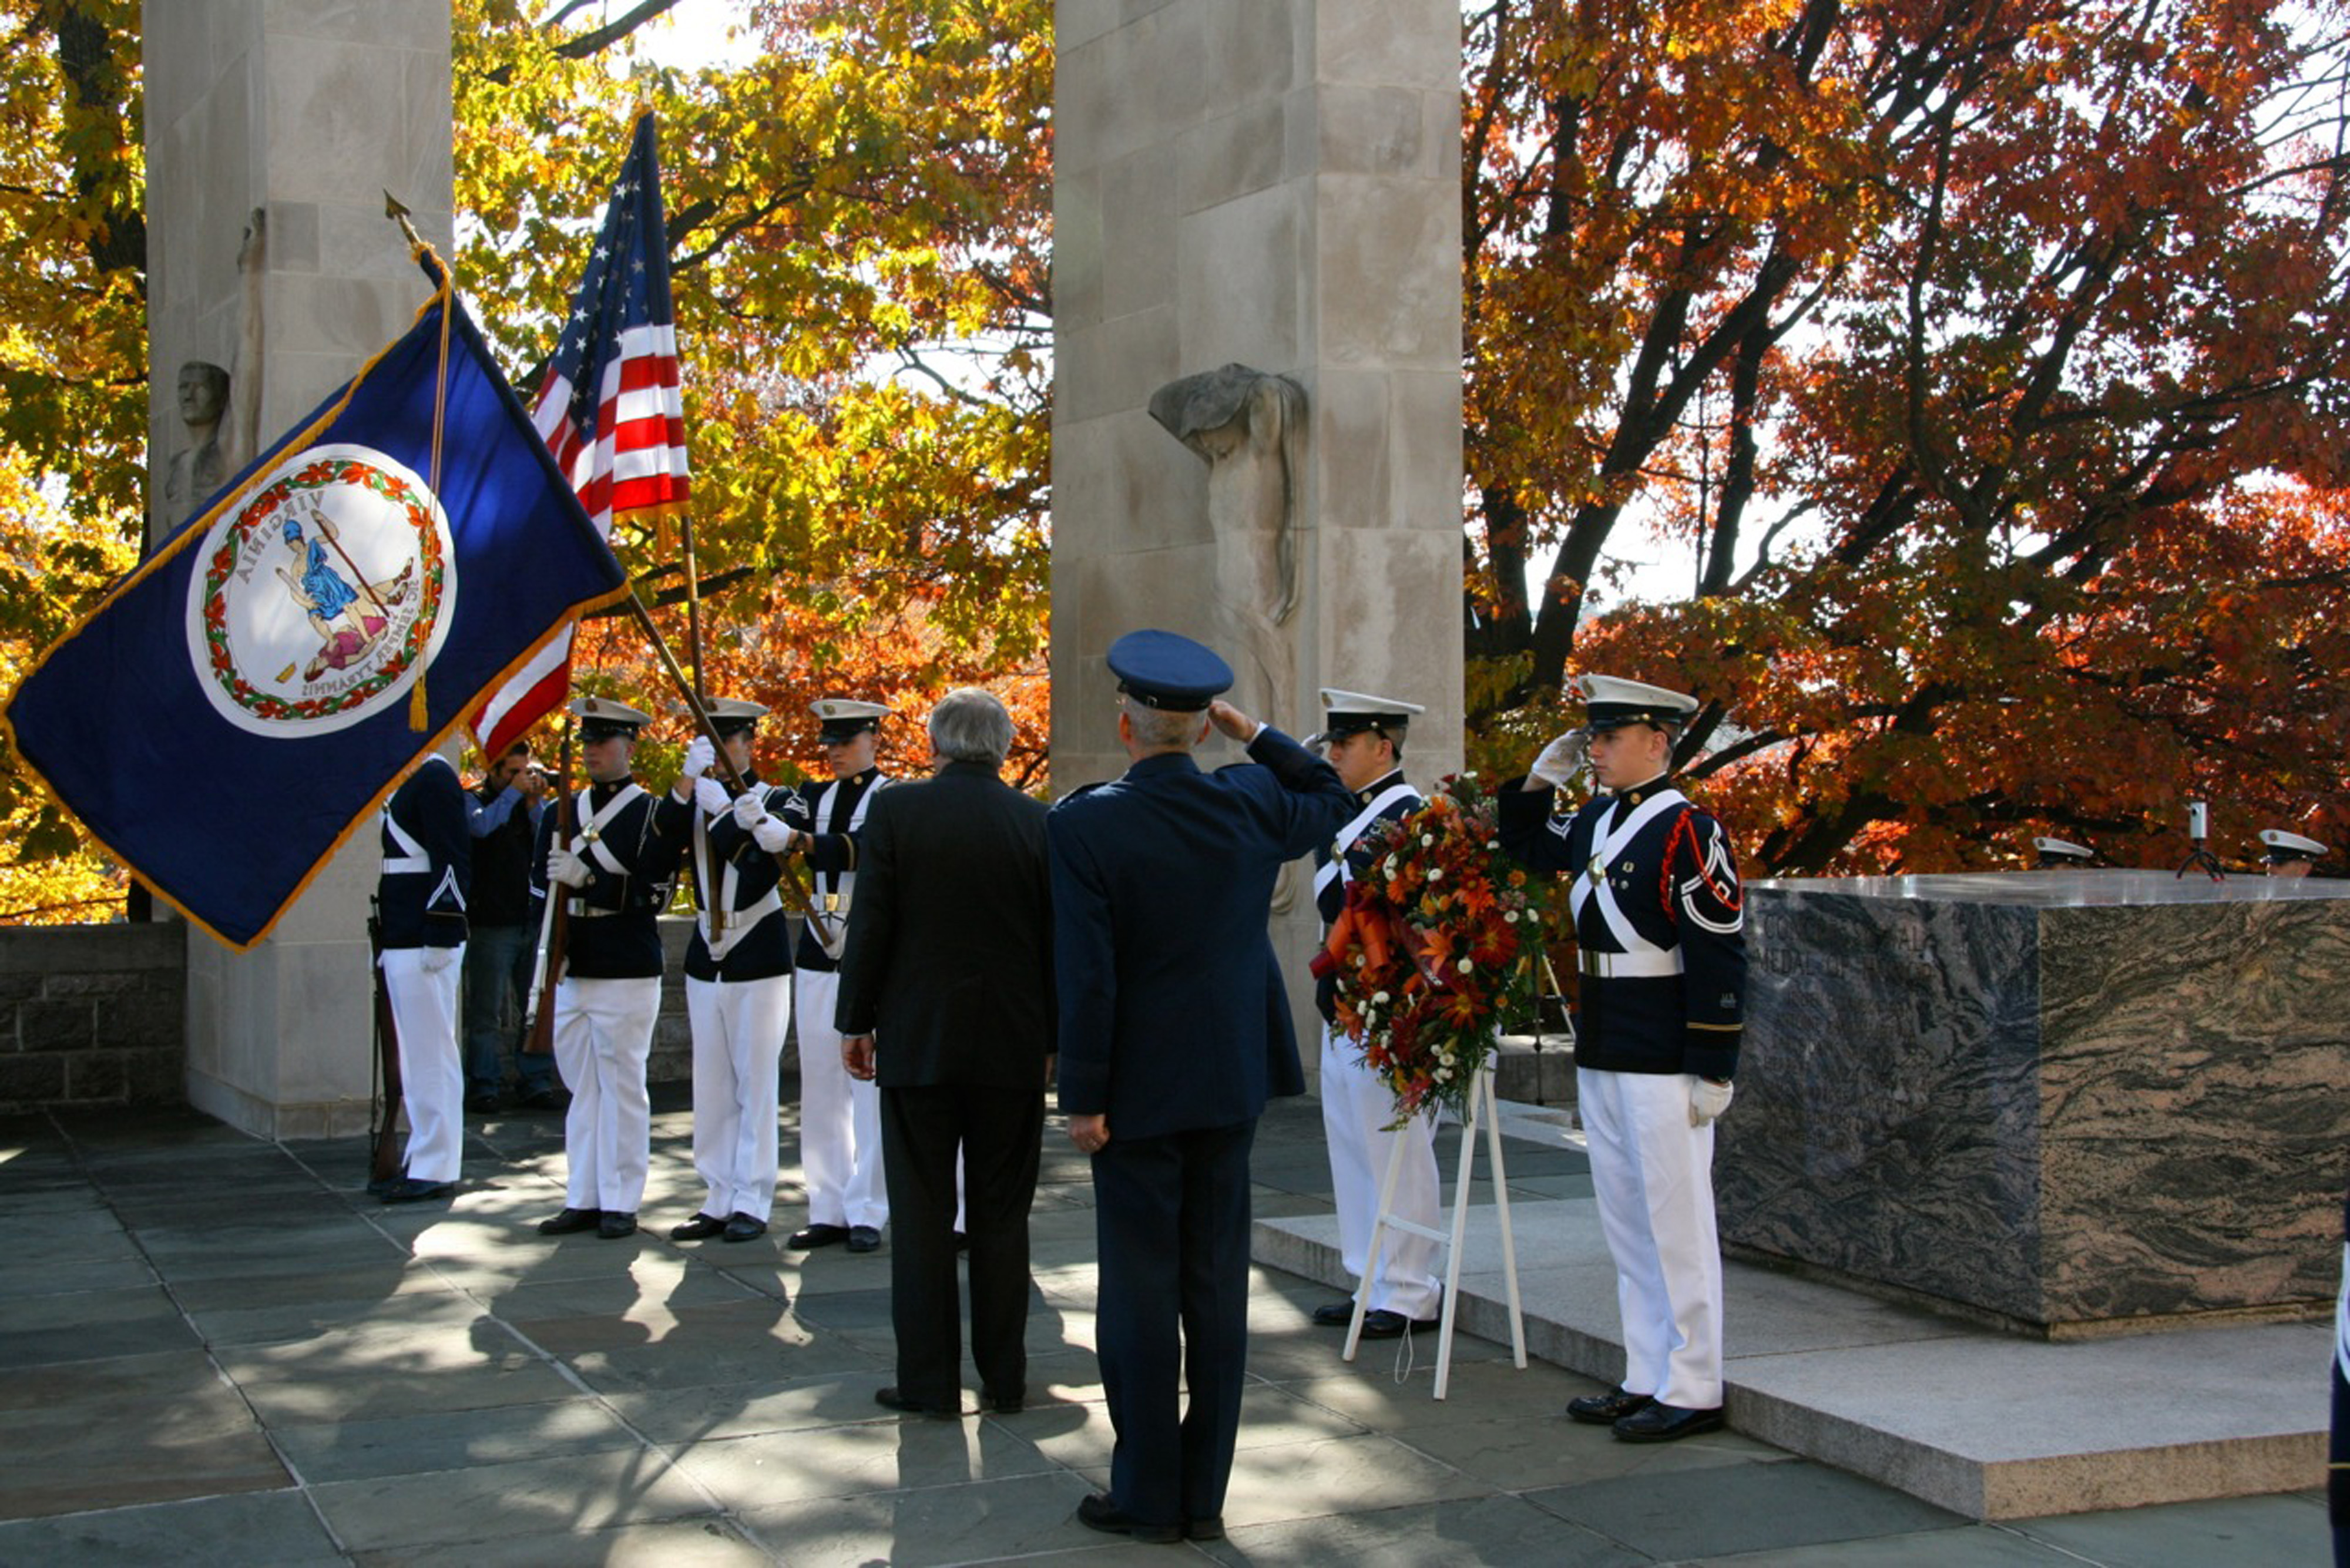 The Virginia Tech Corps of Cadets Veterans Day Ceremony at the War Memorial in 2010